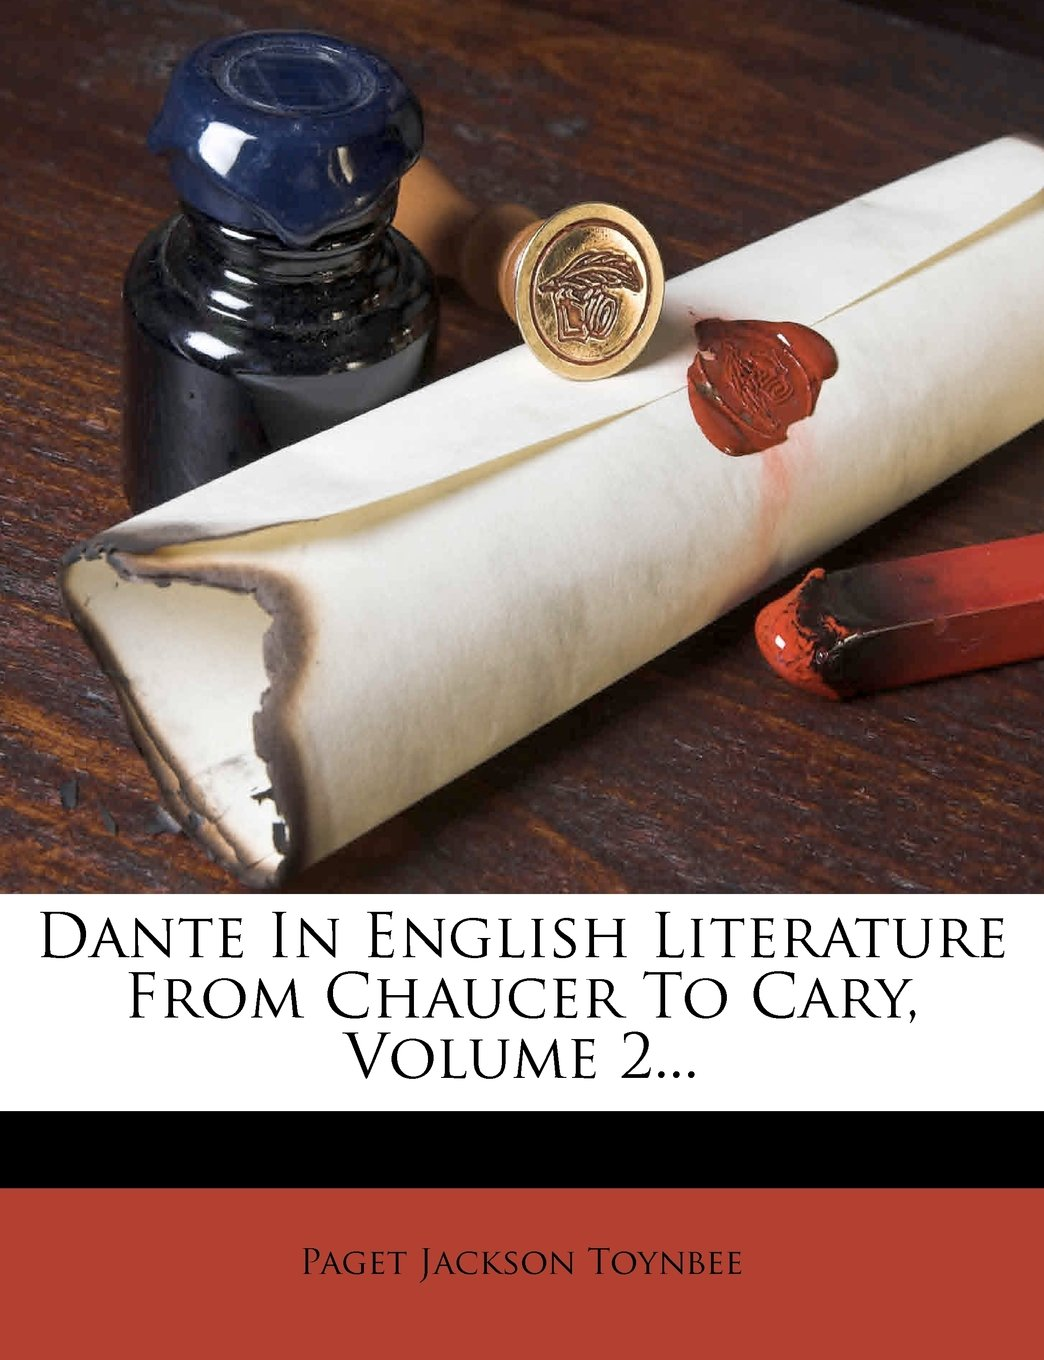 Dante In English Literature From Chaucer To Cary, Volume 2... PDF ePub ebook